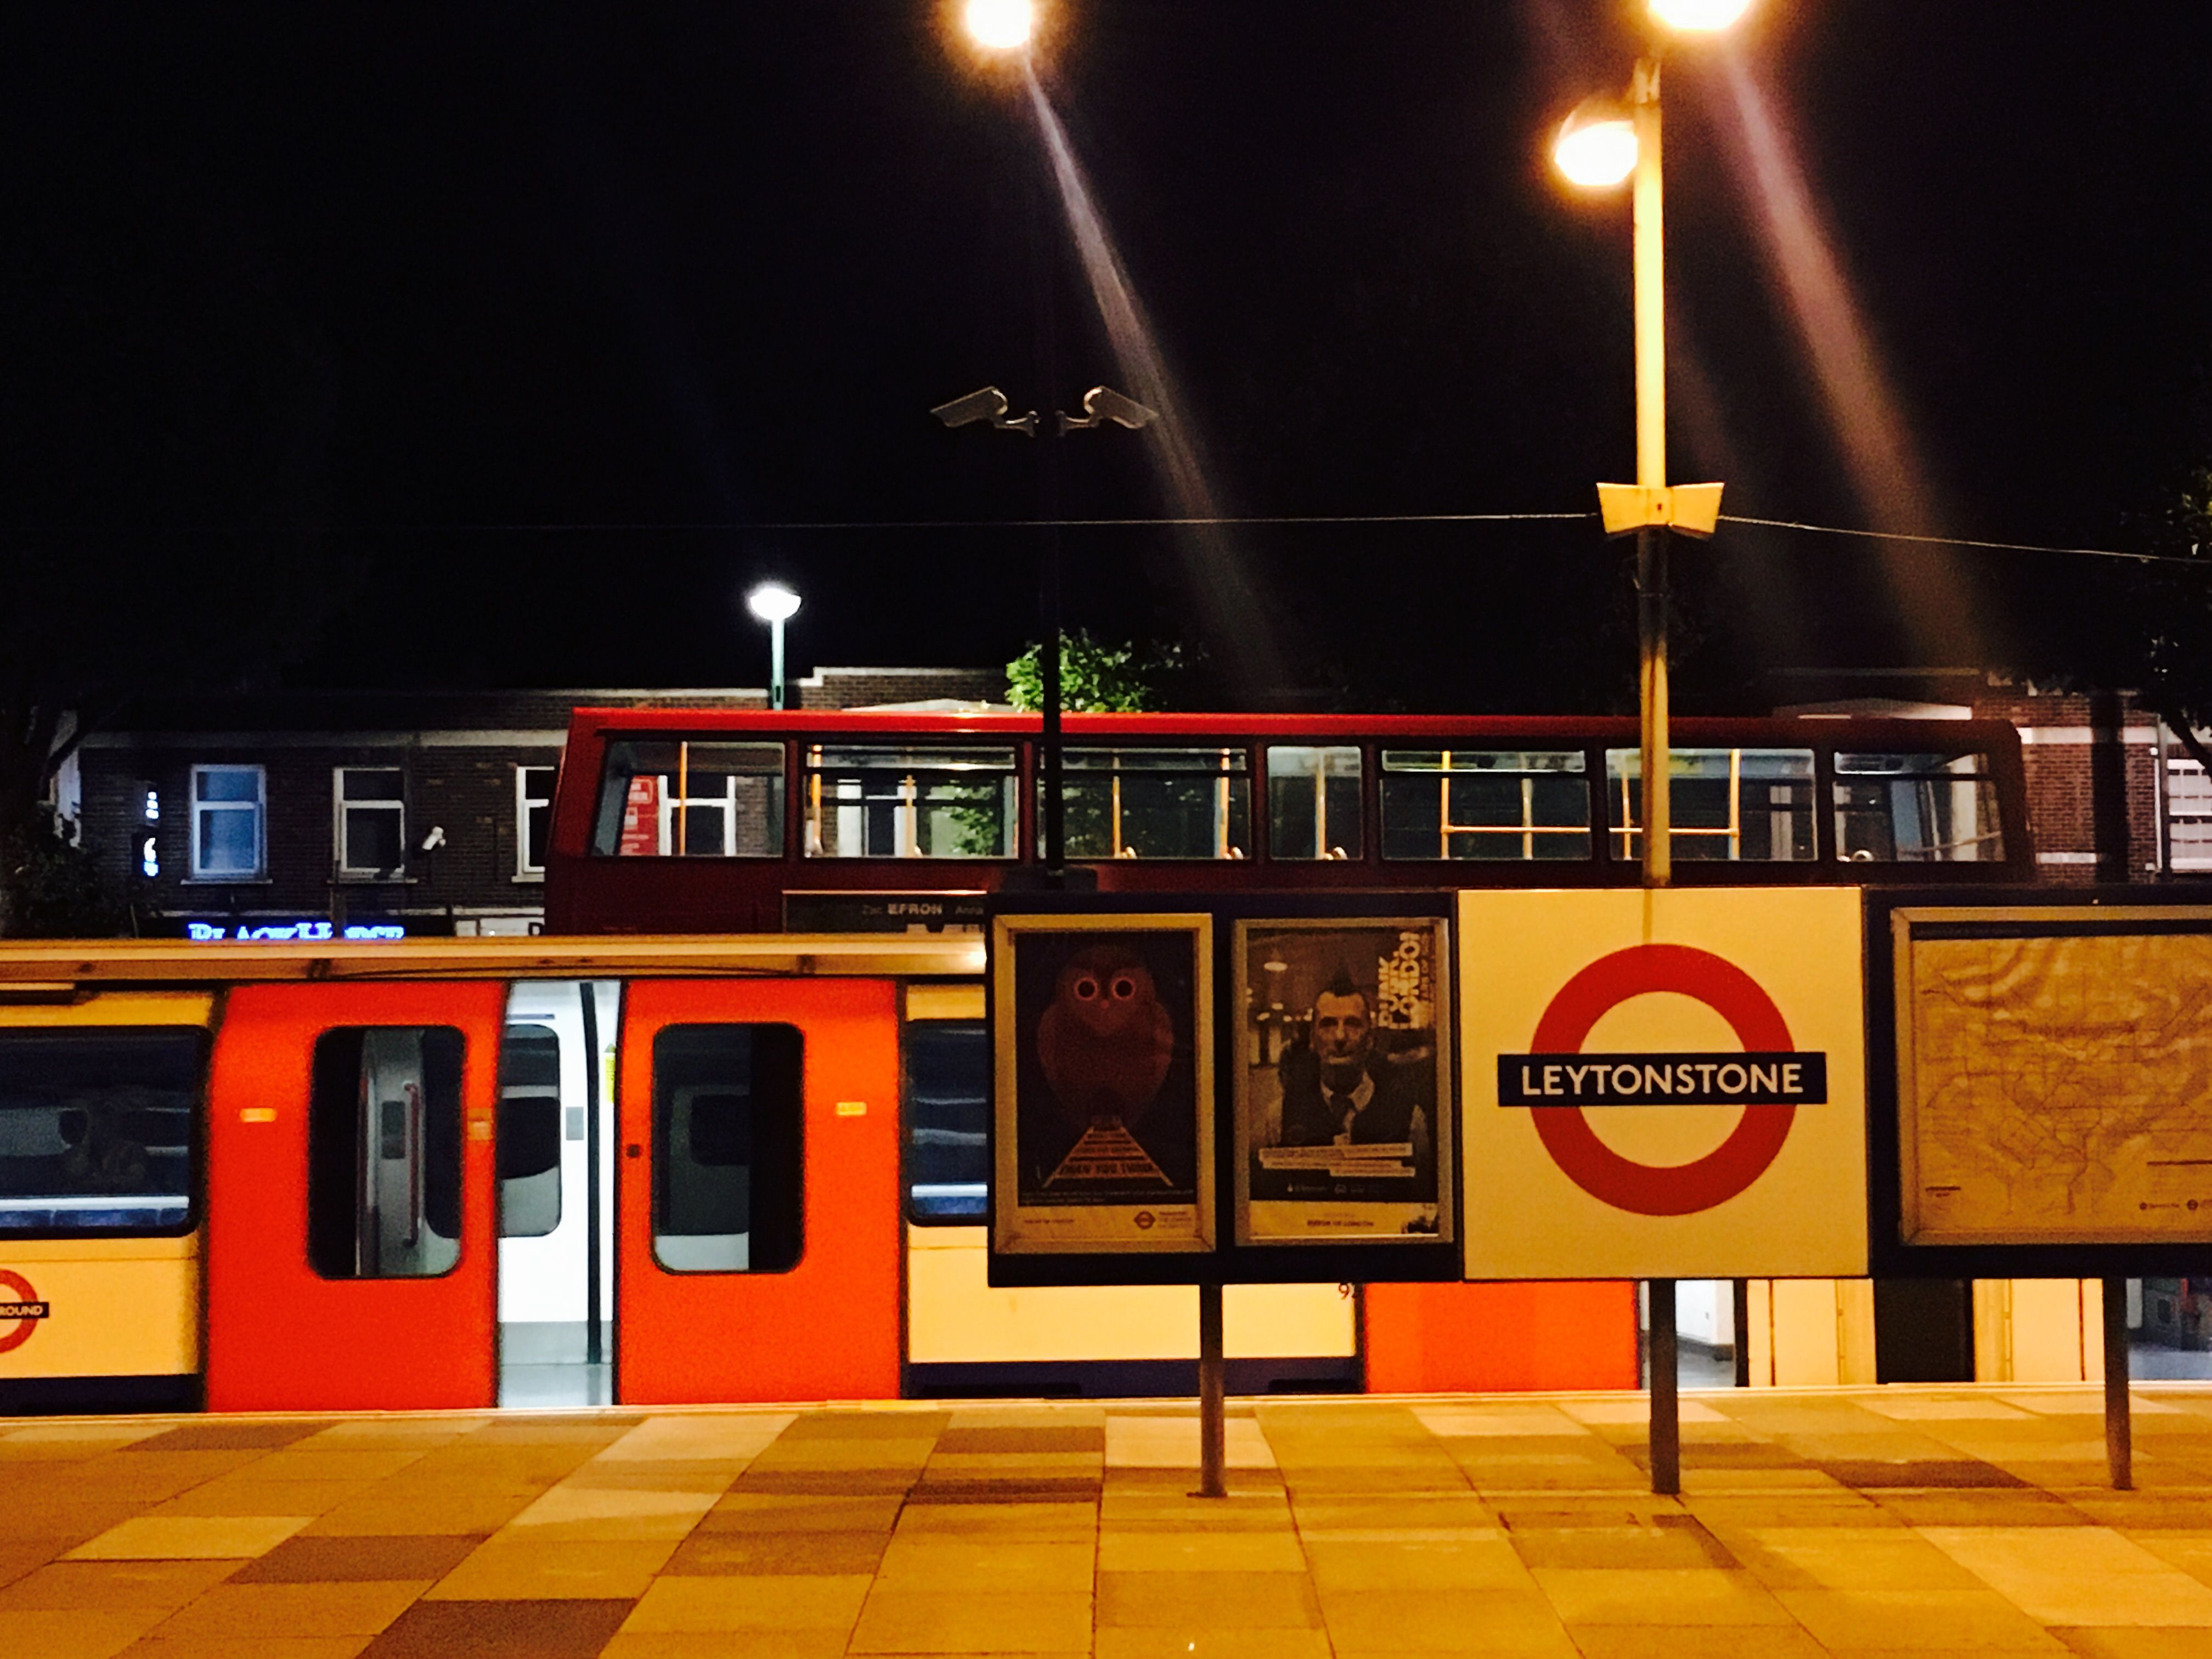 Tfl by night